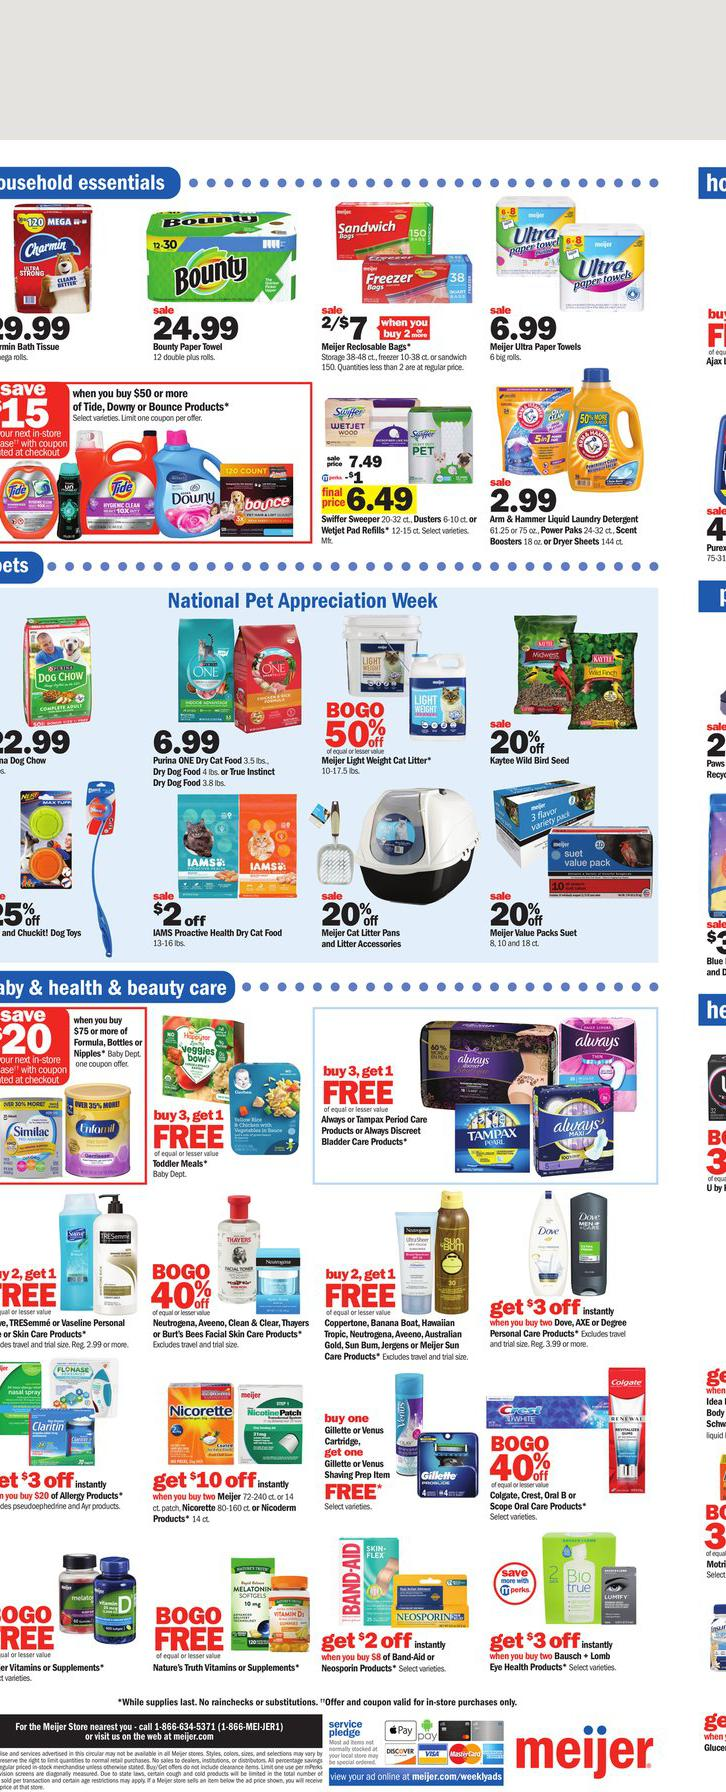 06.06.2021 Meijer ad 14. page